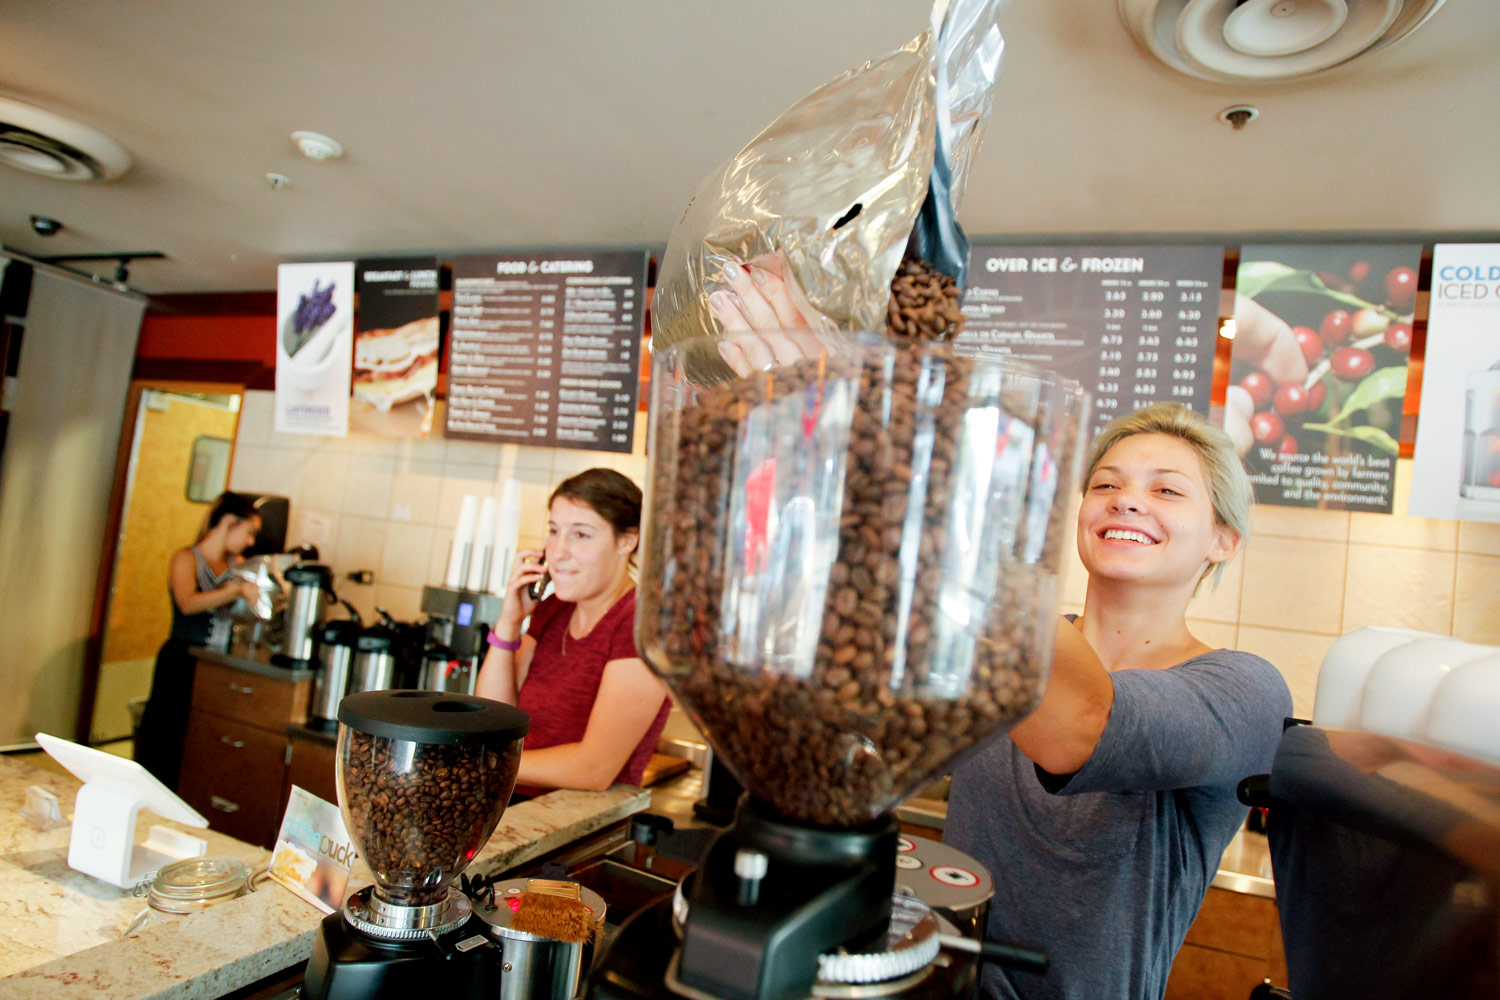 conscious-cup-coffee-marketing-commercial-promotional-photography-ruthie-hauge-madison-wi25.jpg